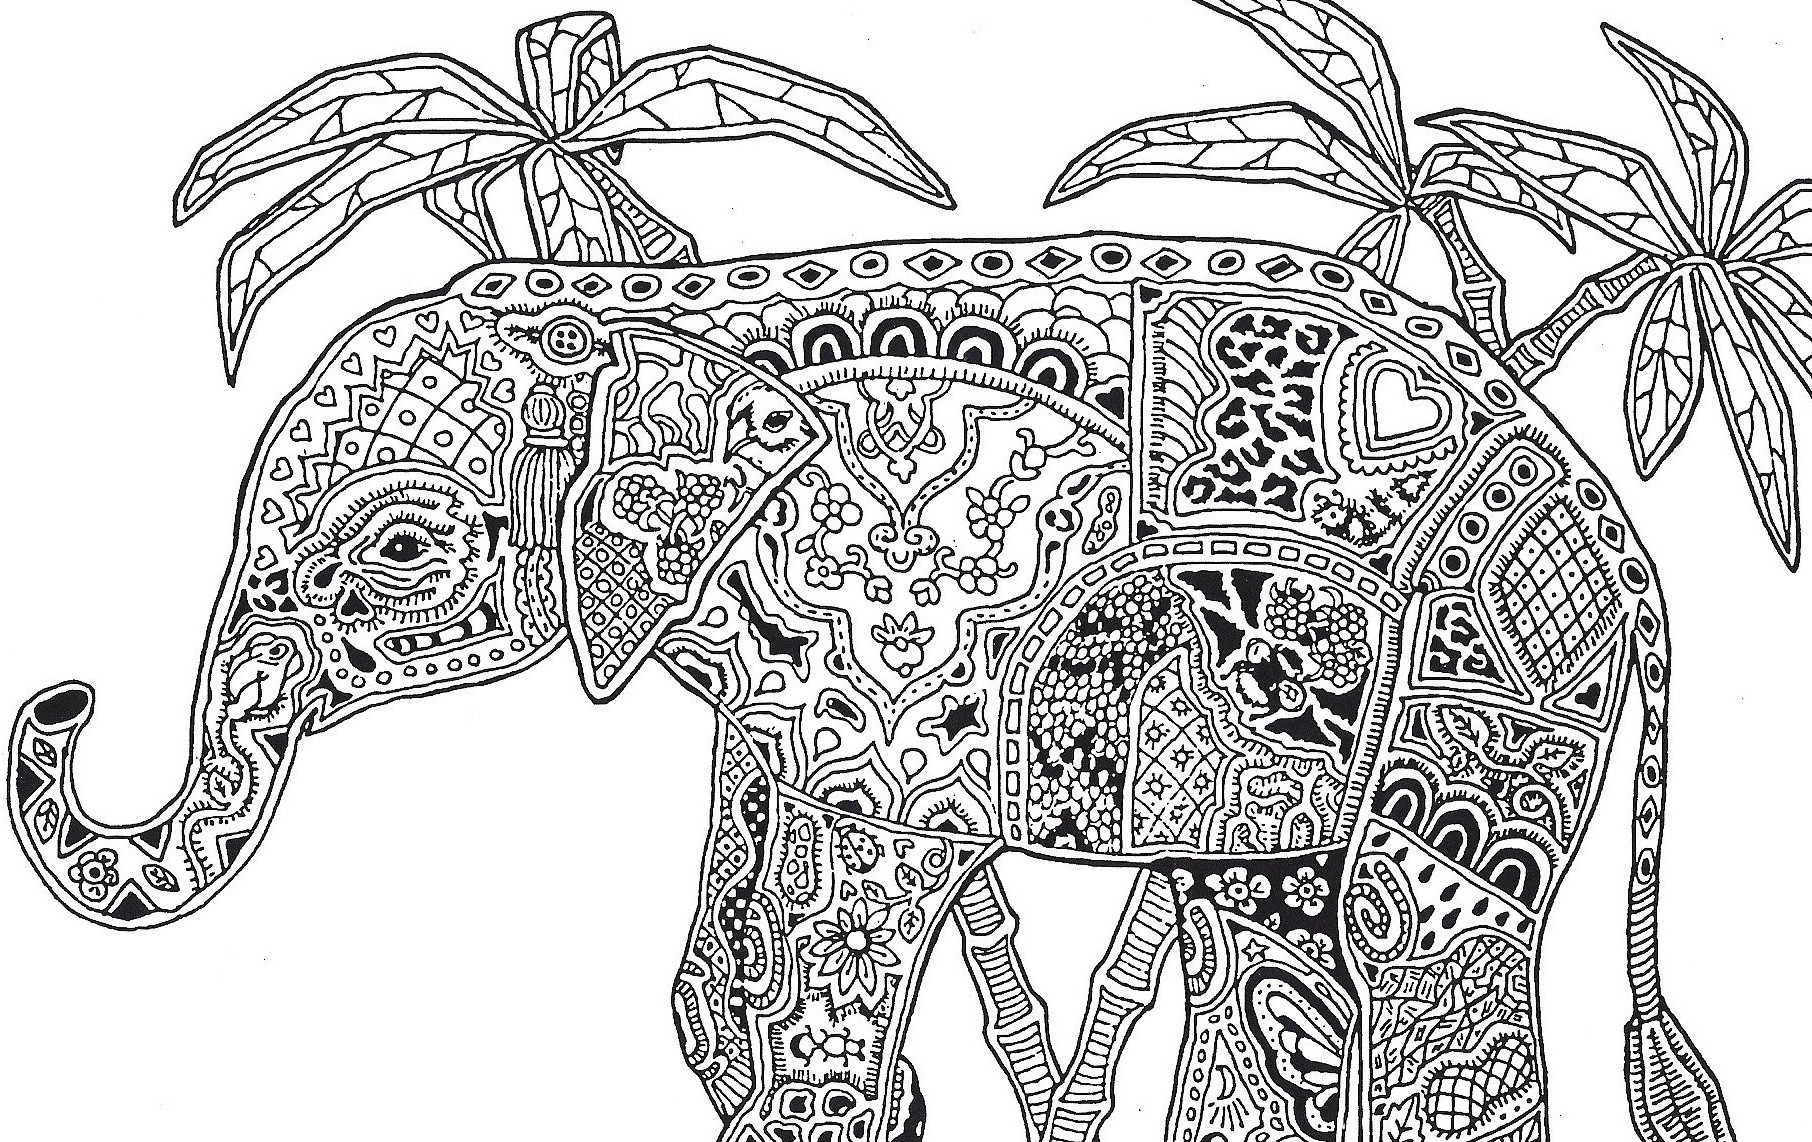 Coloring Pages For Adults Difficult  Difficult Animals Coloring Pages For Adults – Color Bros